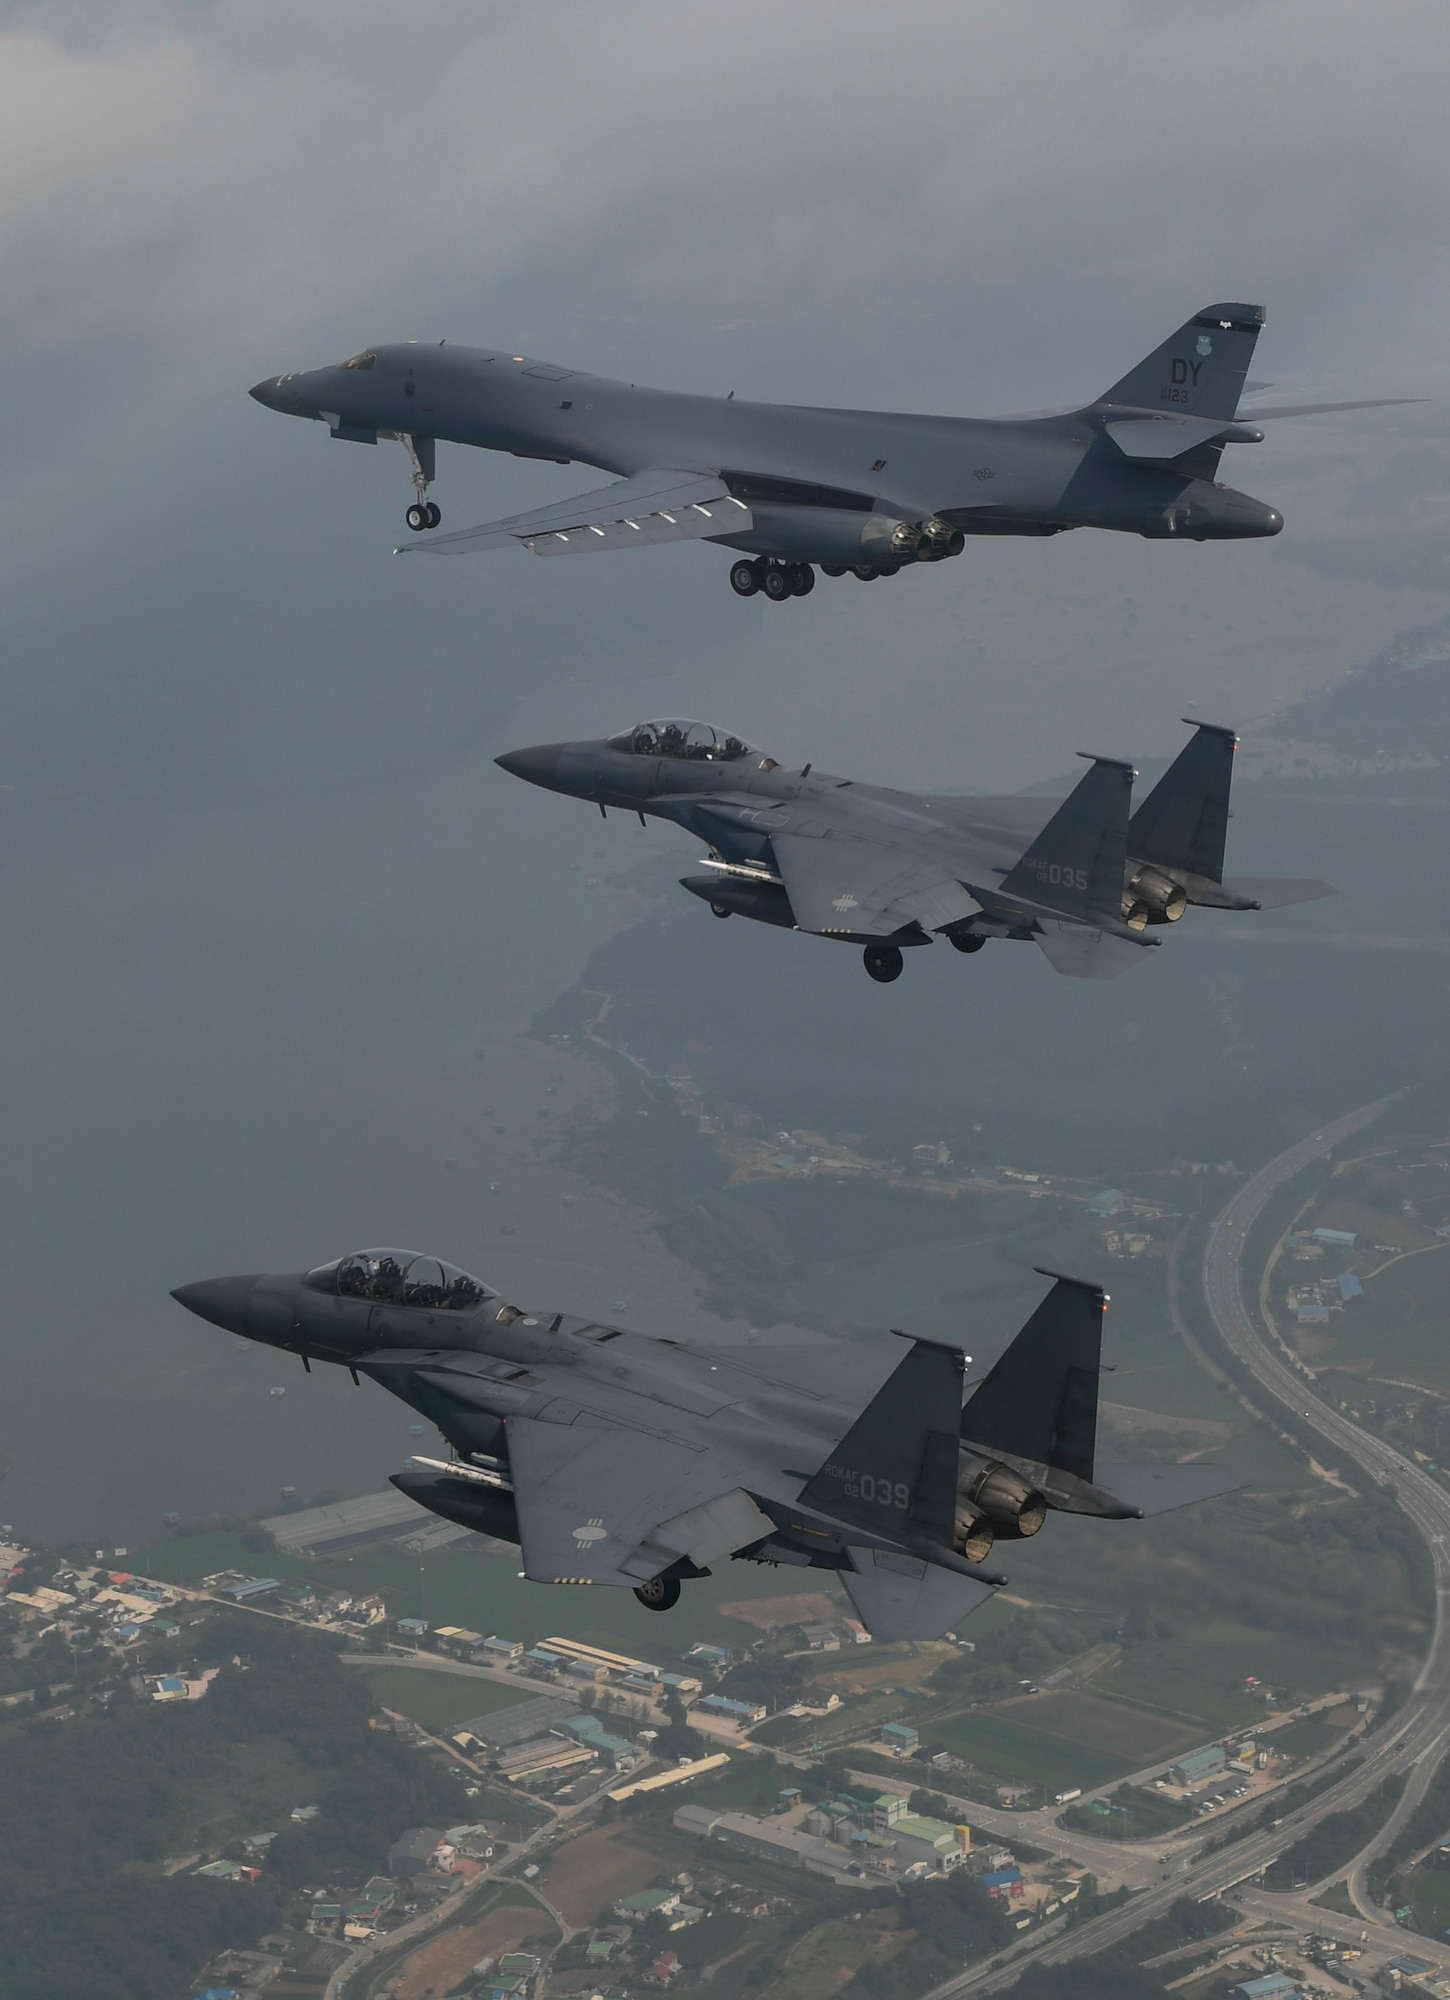 In a demonstration of ironclad U.S. commitment to our allies, a U.S. Air Force B-1B Lancer assigned to the 9th Expeditionary Bomb Squadron, deployed from Dyess Air Force Base, Texas, is joined by Republic of Korea air force F-15s during a 10-hour mission from Andersen Air Force Base, Guam, into Japanese airspace and over the Korean Peninsula, July 30, 2017. The B-1s first made contact with Japan Air Self-Defense Force F-2 fighter jets in Japanese airspace, then proceeded over the Korean Peninsula and were joined by South Korean F-15 fighter jets. This mission is in direct response to North Korea's escalatory launch of intercontinental ballistic missiles on July 3 and 28. (Courtesy photo)